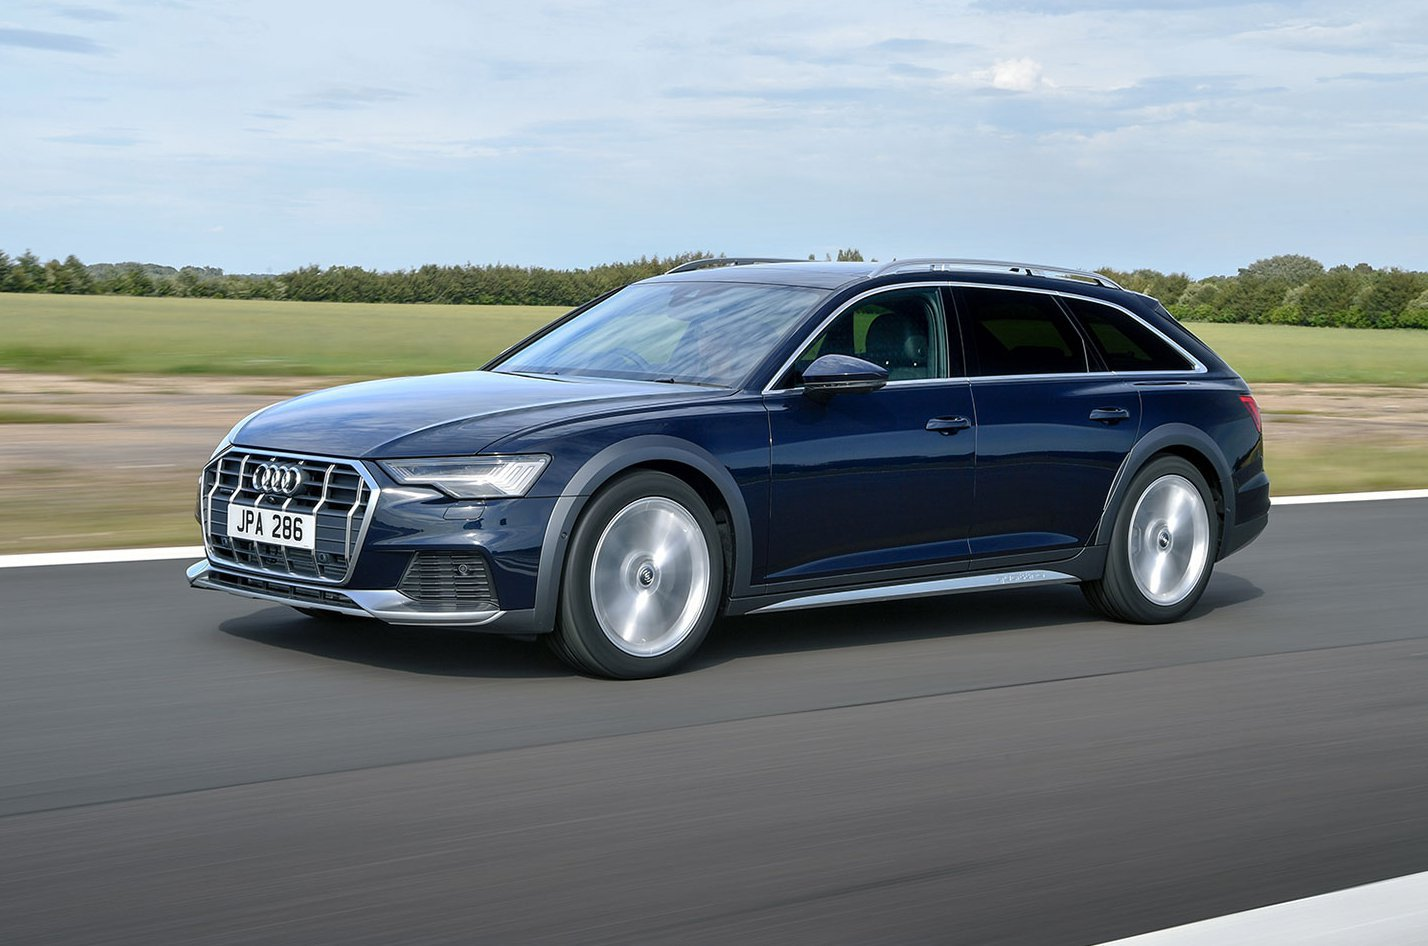 Audi A6 Allroad front and side